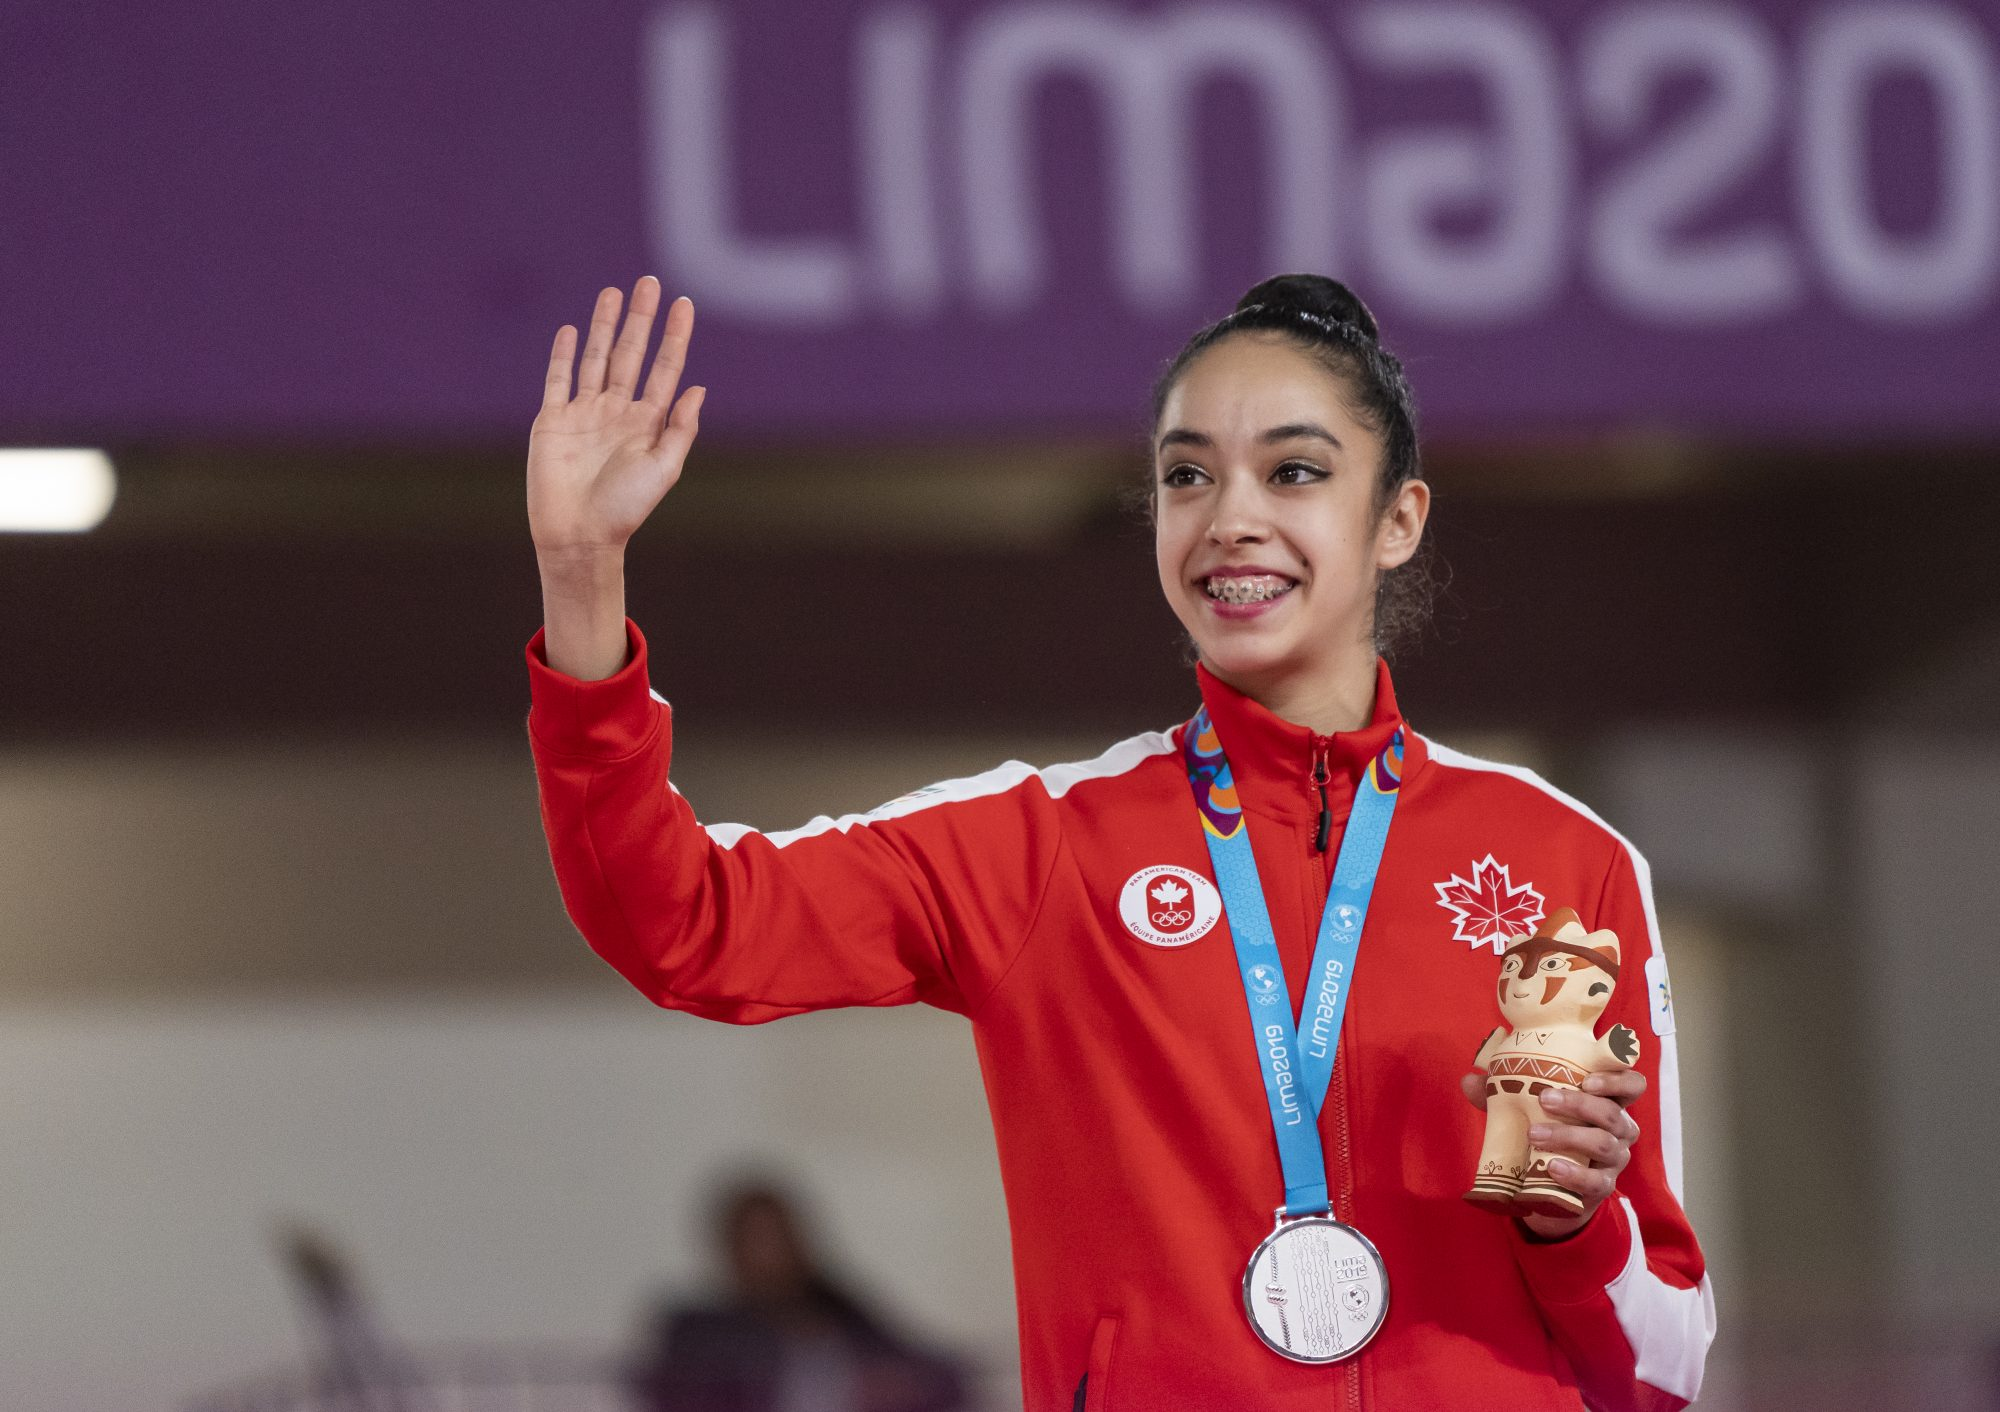 athlete waves while wearing her medal